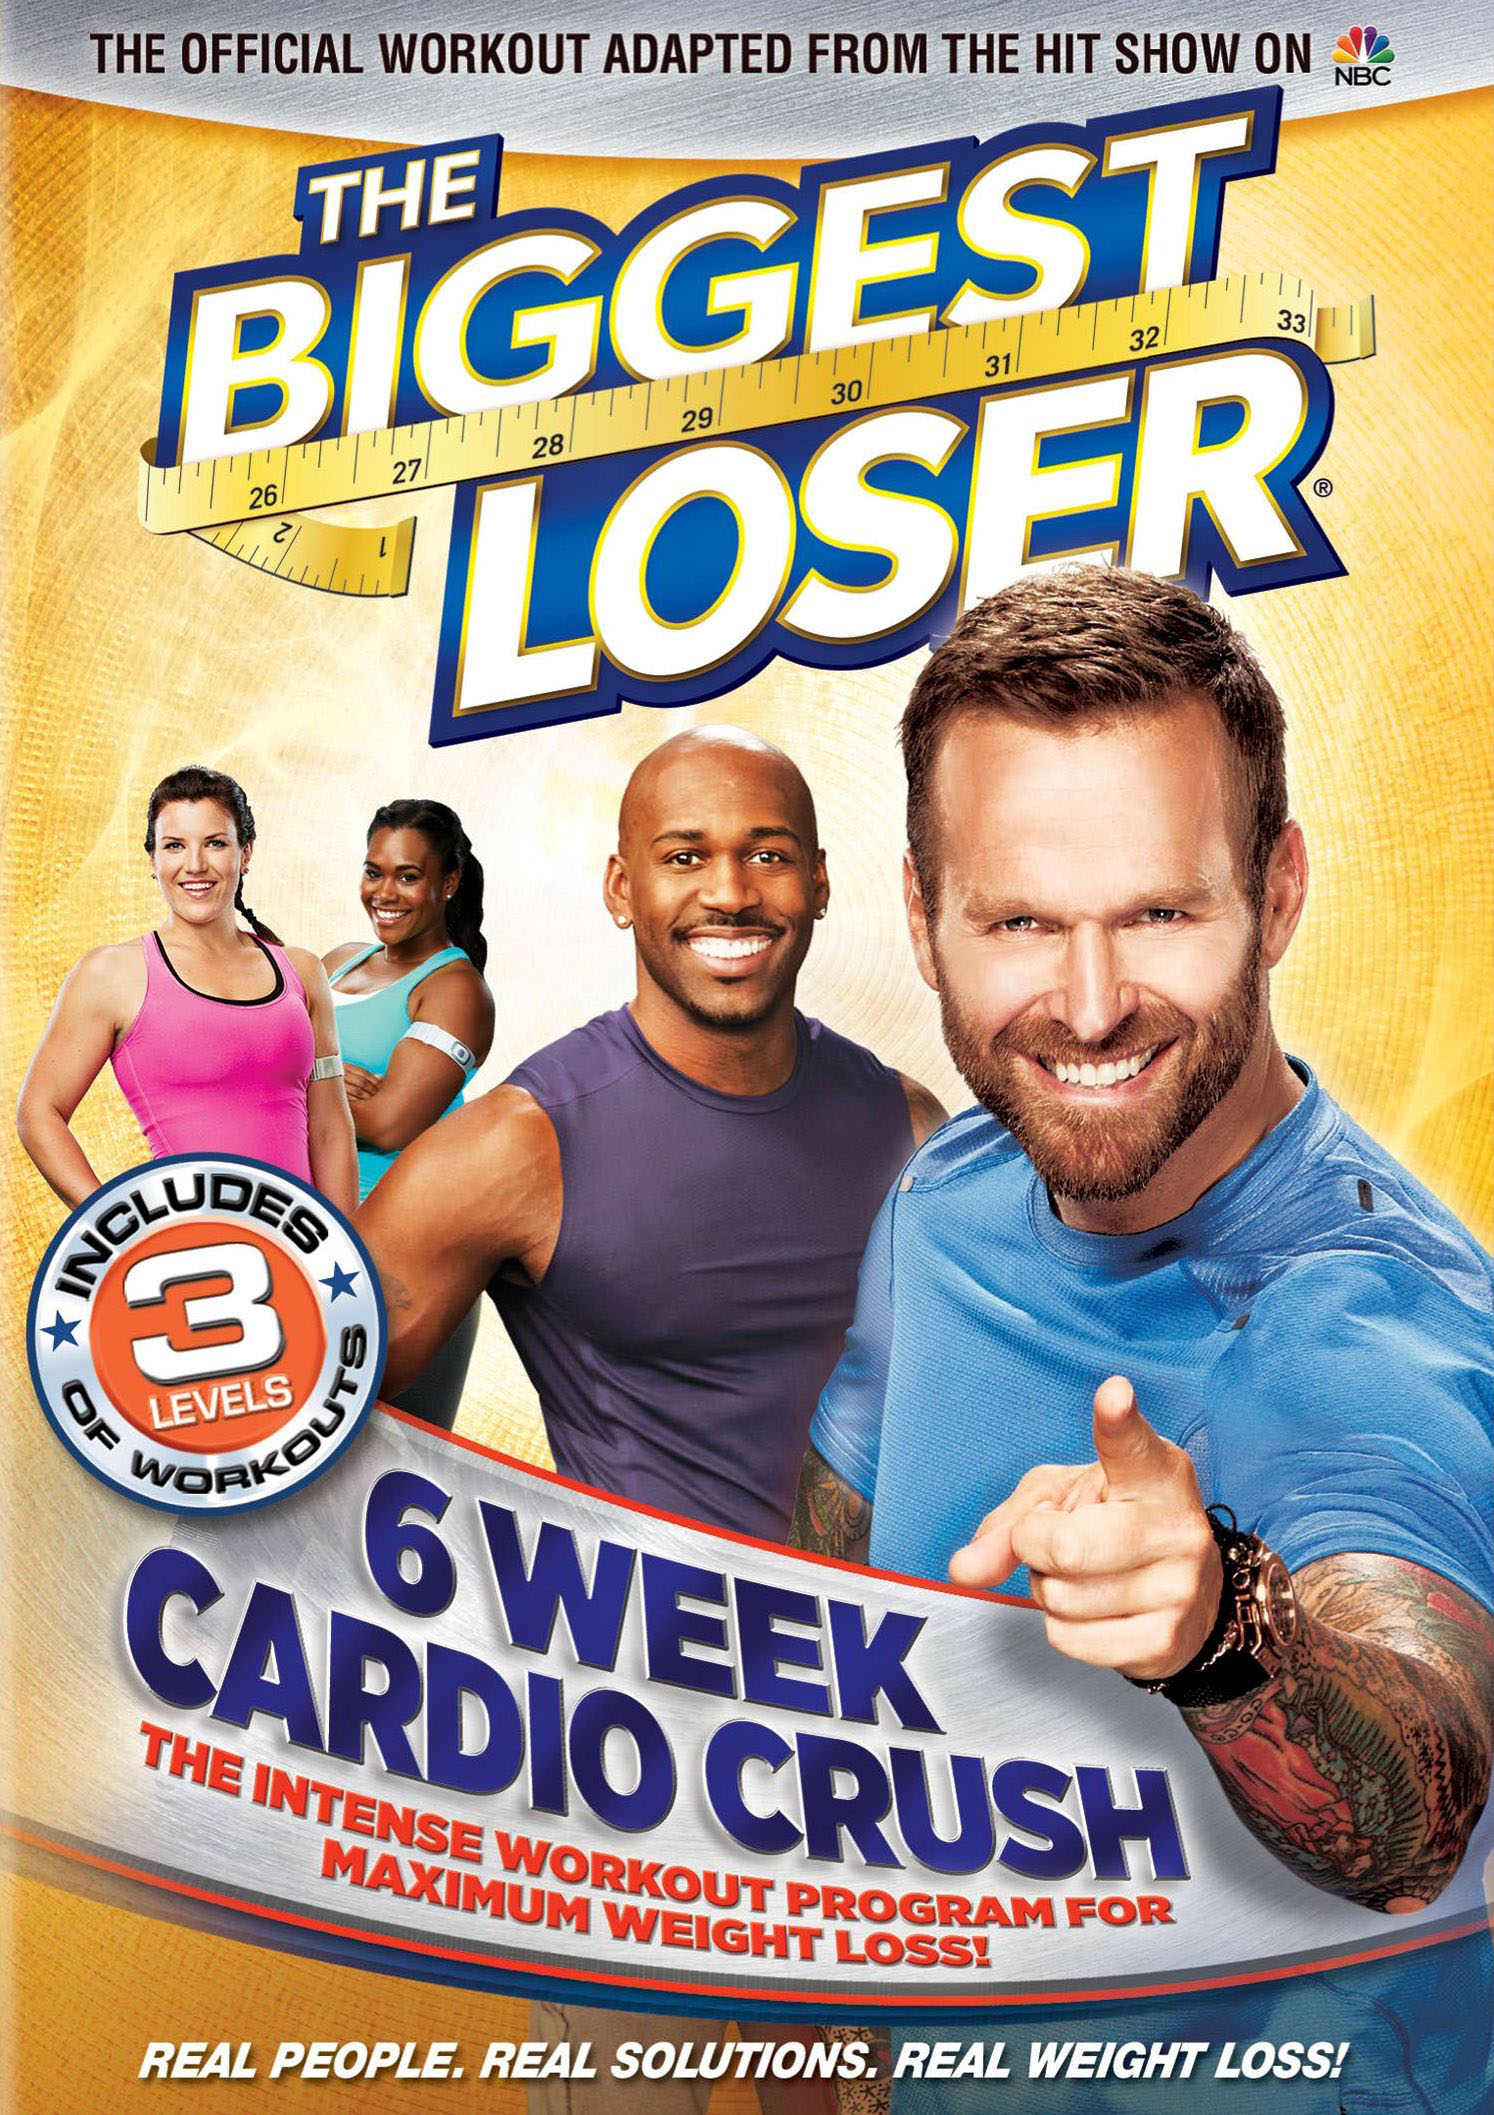 The Biggest Loser: 6 Week Cardio Crush